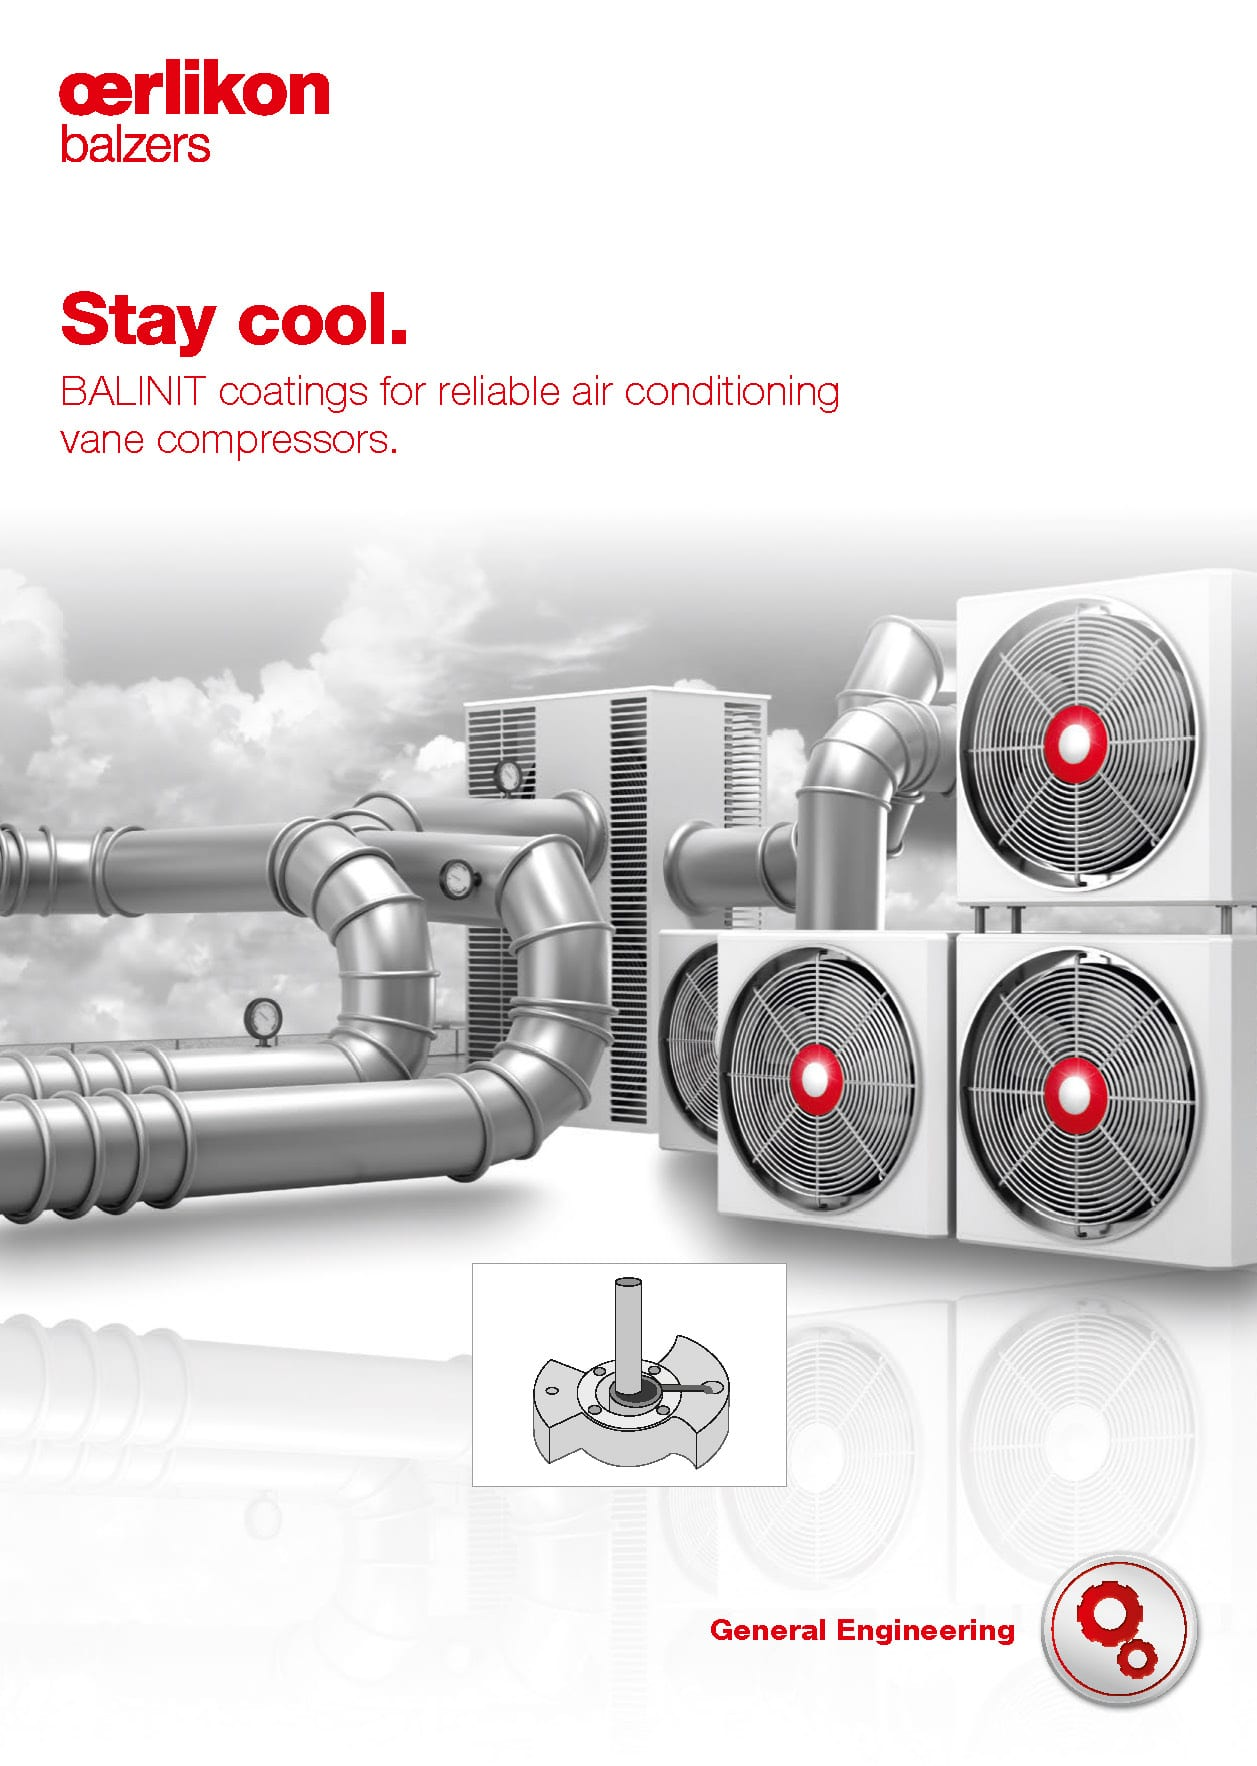 Air conditioning - Stay cool